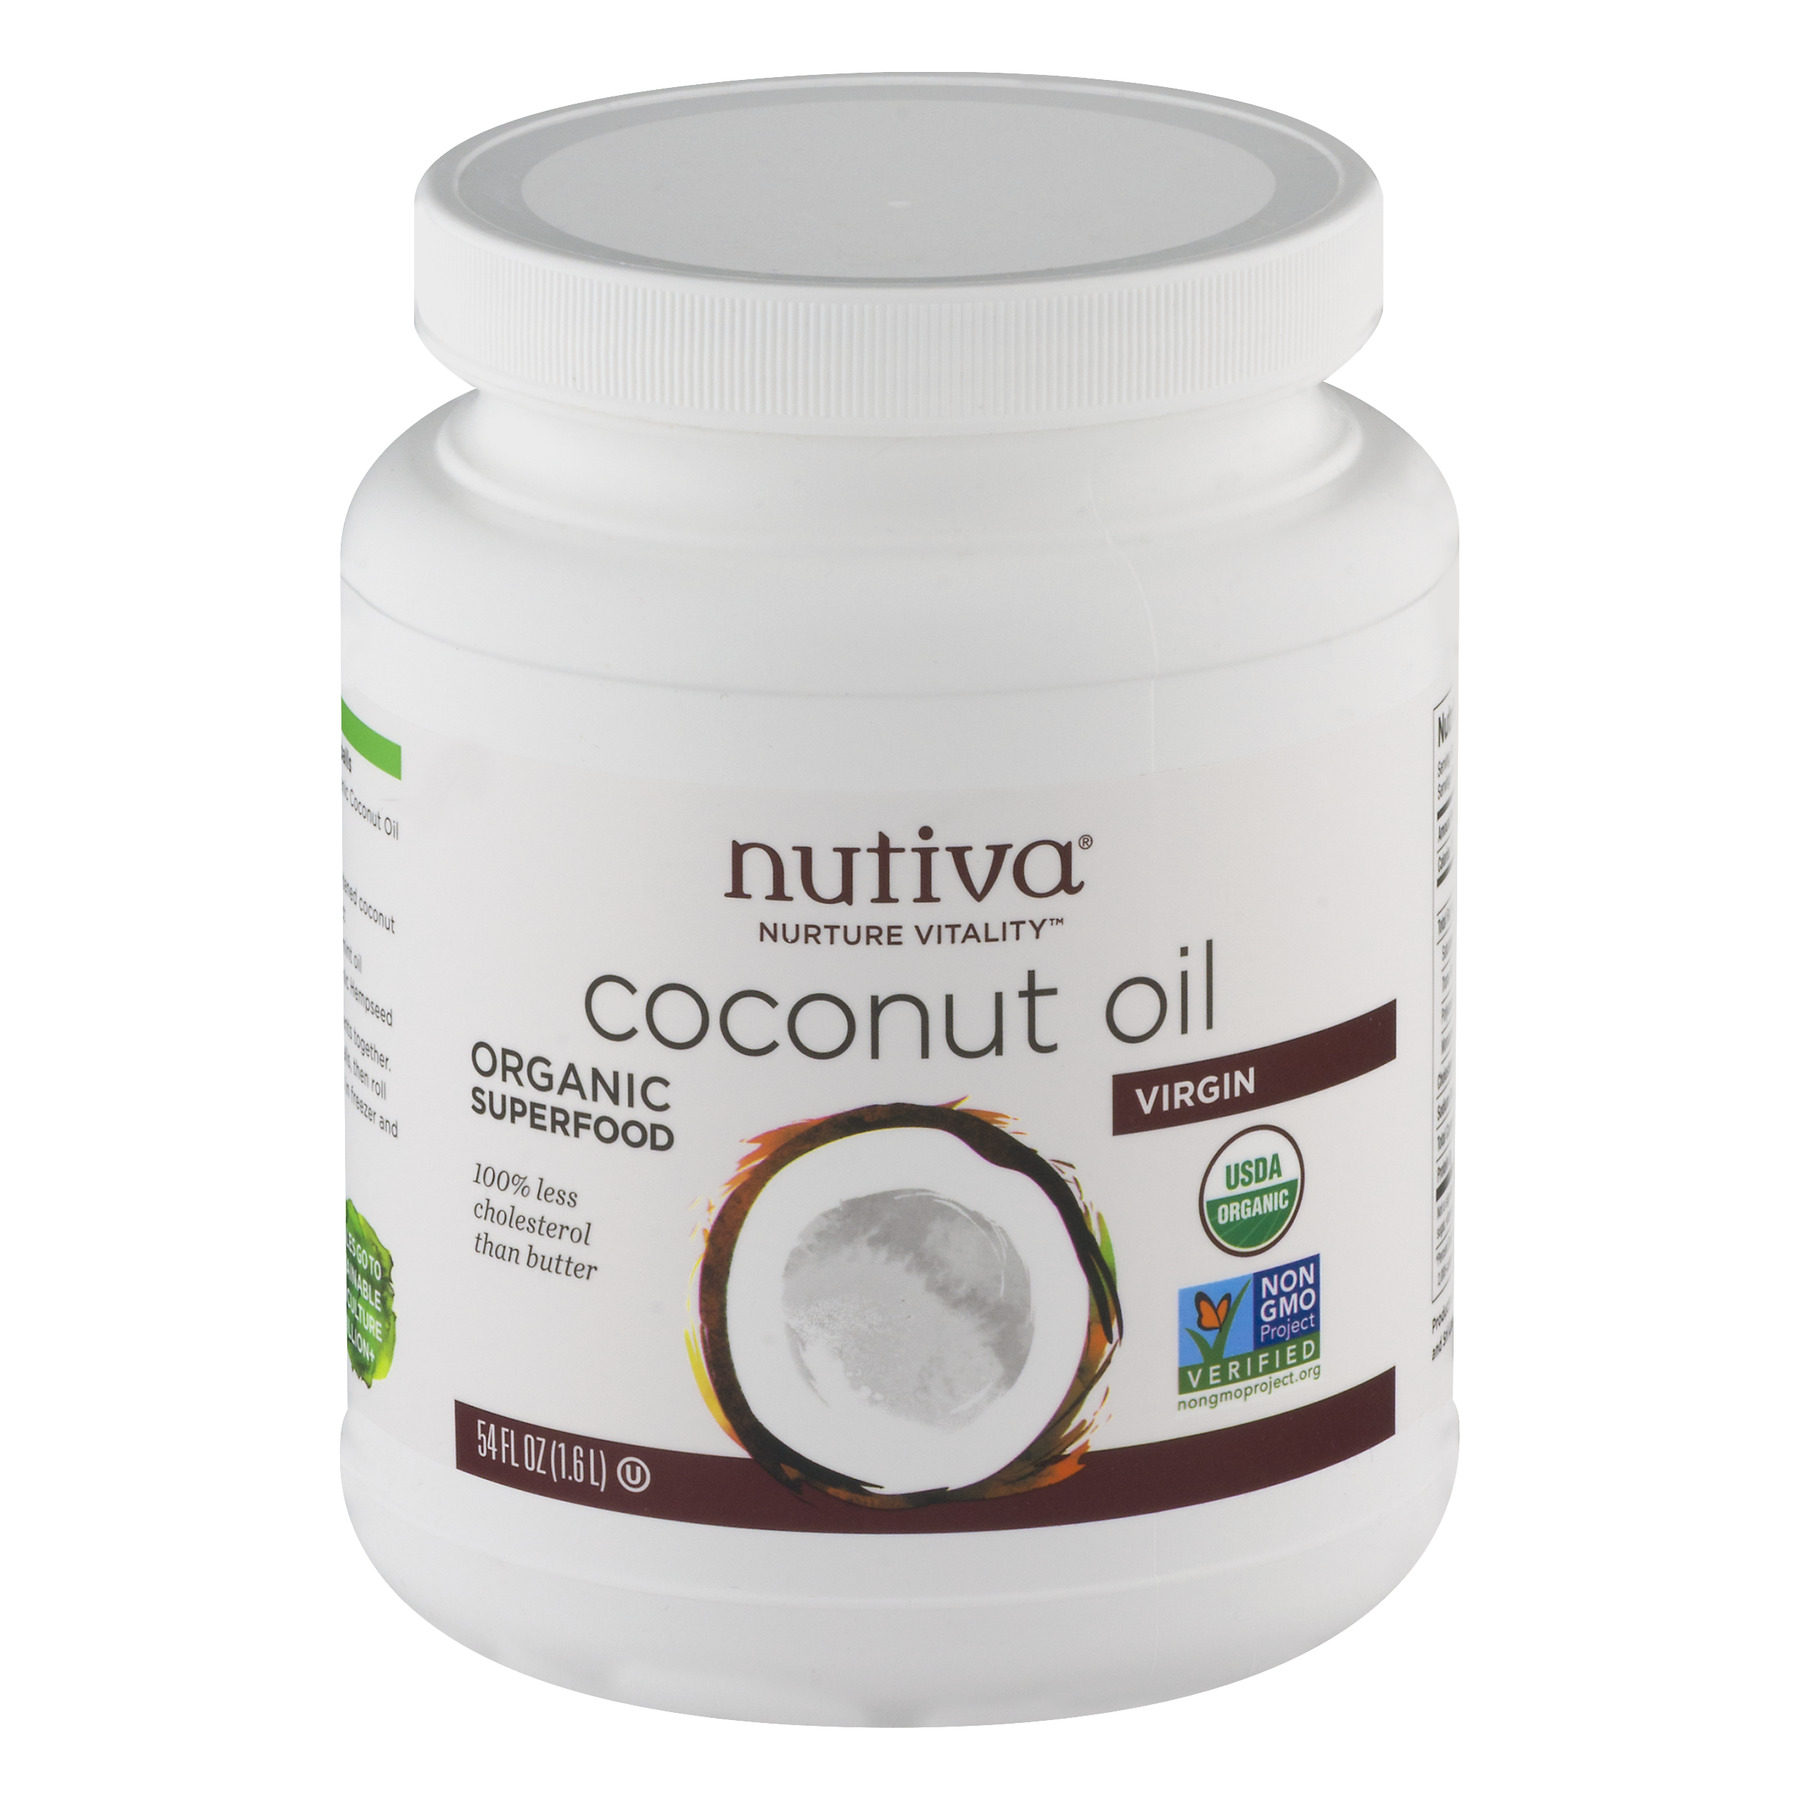 Nutiva Organic Superfood Virgin Coconut Oil, 54.0 FL OZ